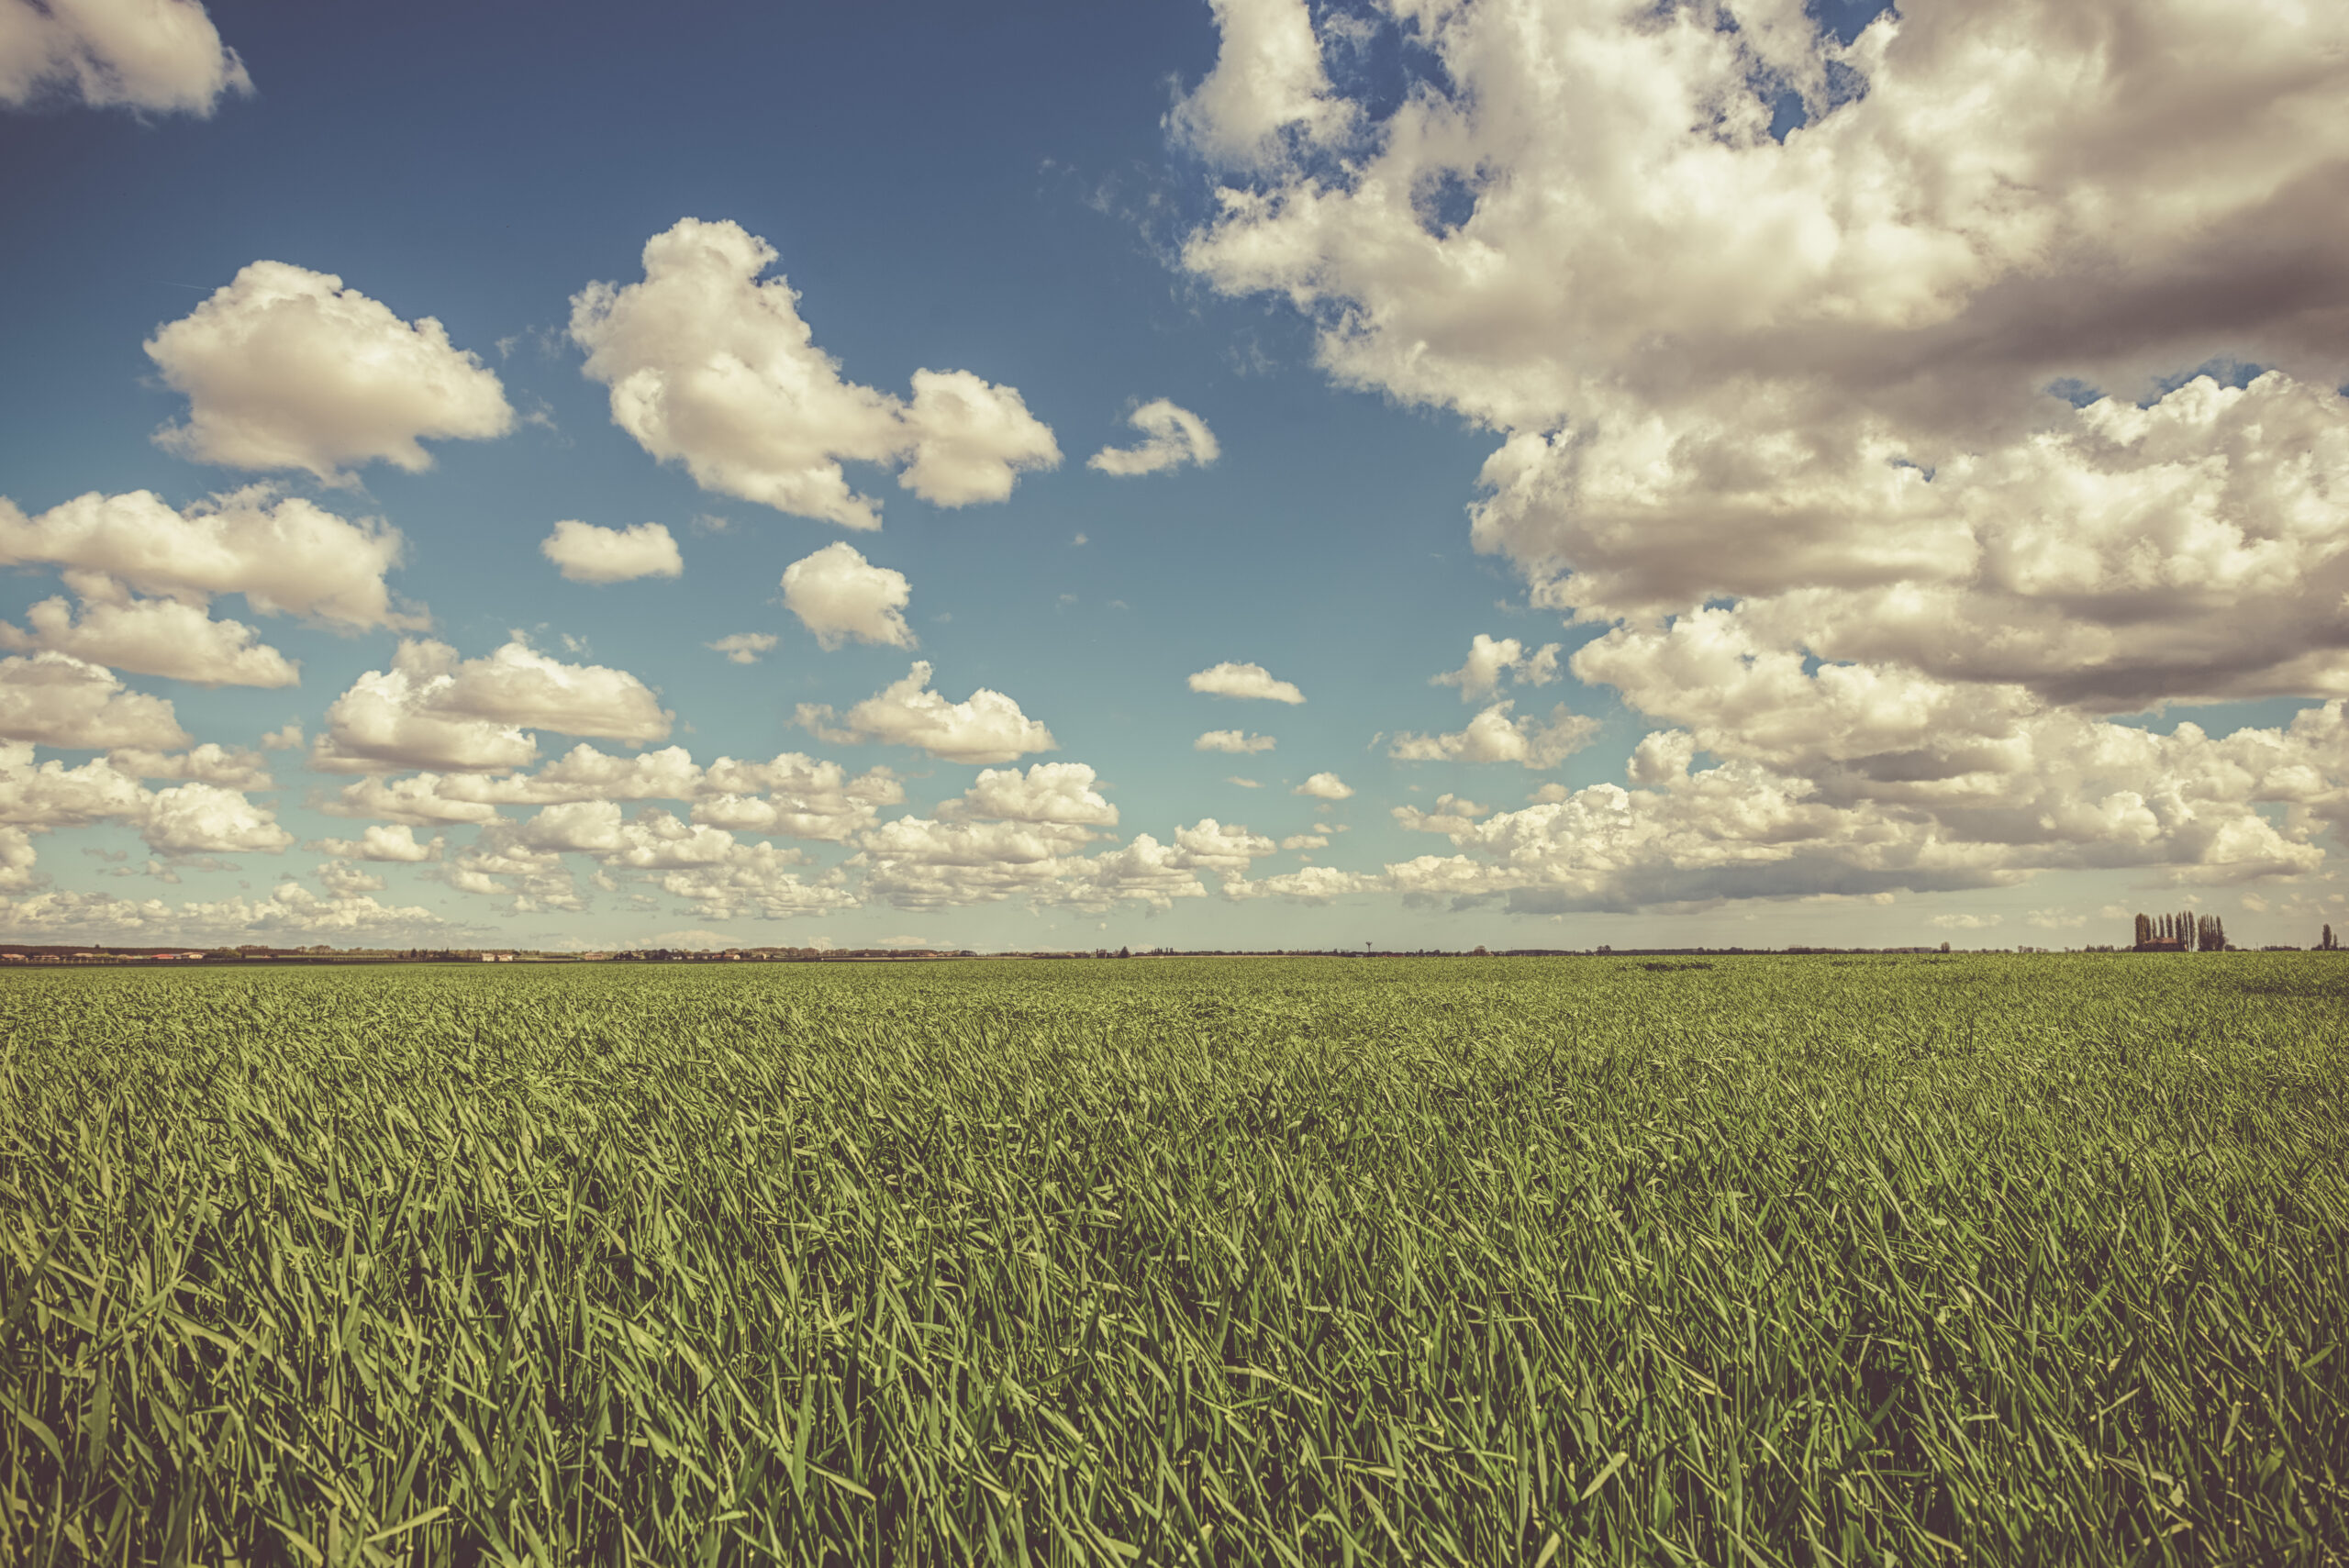 Spring cloudy sky over the grain field